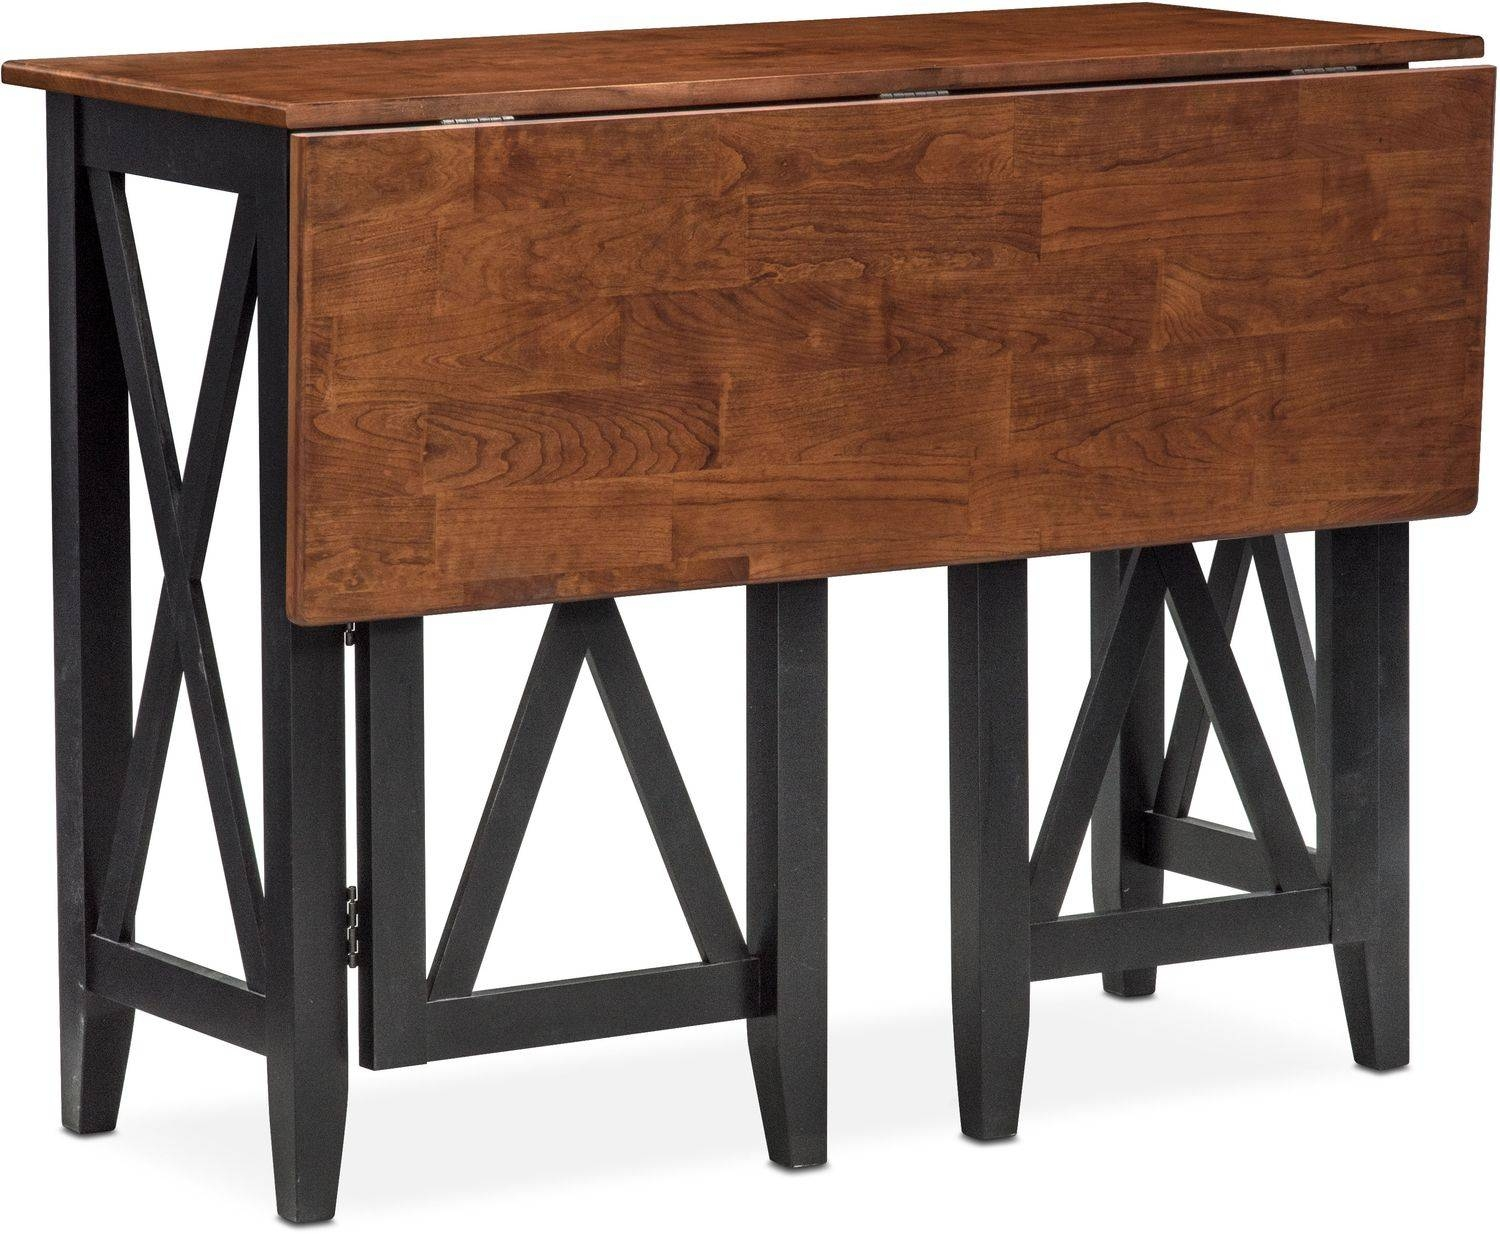 Nantucket Breakfast Bar And 2 Counter-Height Stools - Black And for Counter Height Sofa Tables (Image 5 of 15)